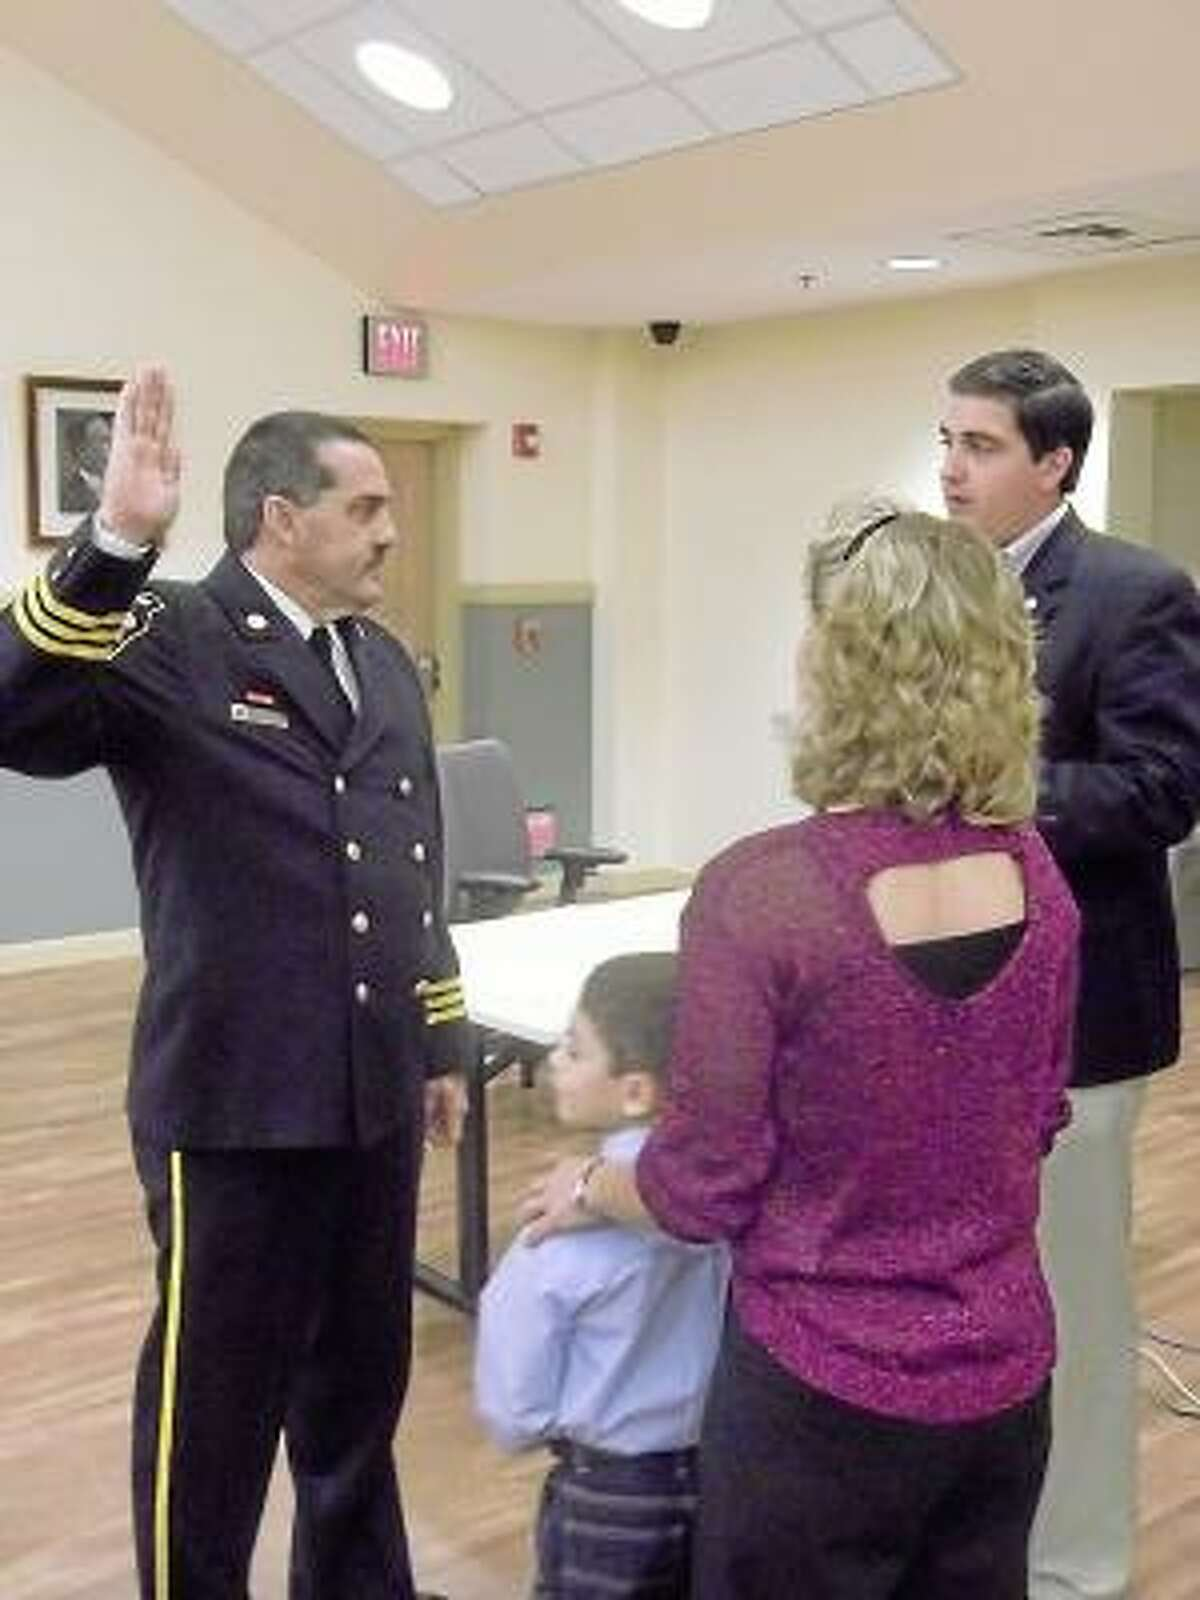 RICKY CAMPBELL/ Register Citizen Gary Brunoli was sworn in Wednesday night as Chief of Torrington Fire Department by Mayor Ryan Bingham. Brunoli's wife, Pam, and grandson Elias, 6, look on. Brunoli has been acting fire chief since July when his predecessor John Field left.